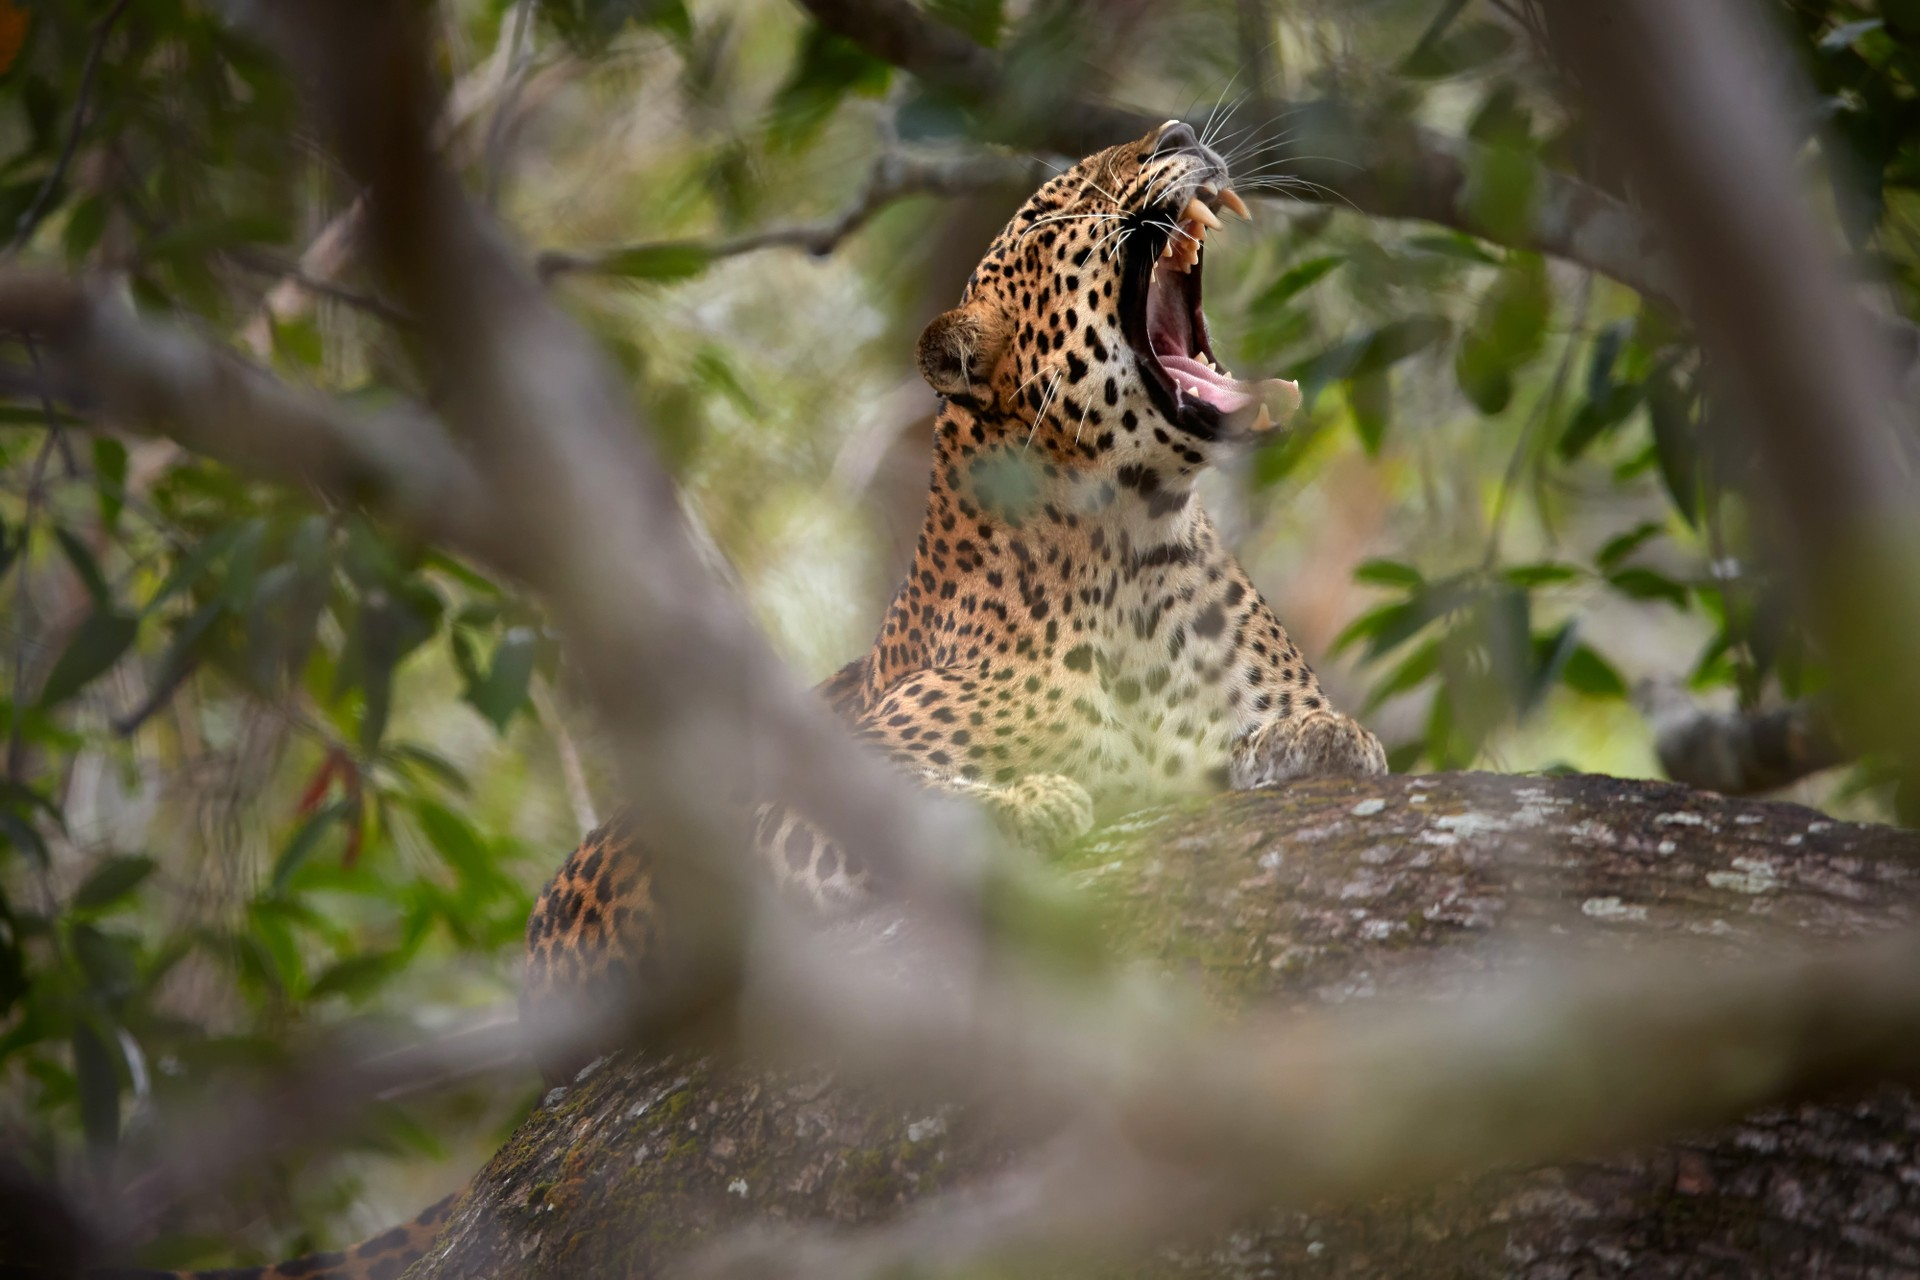 Leopard yawning in tree in Sri Lanka